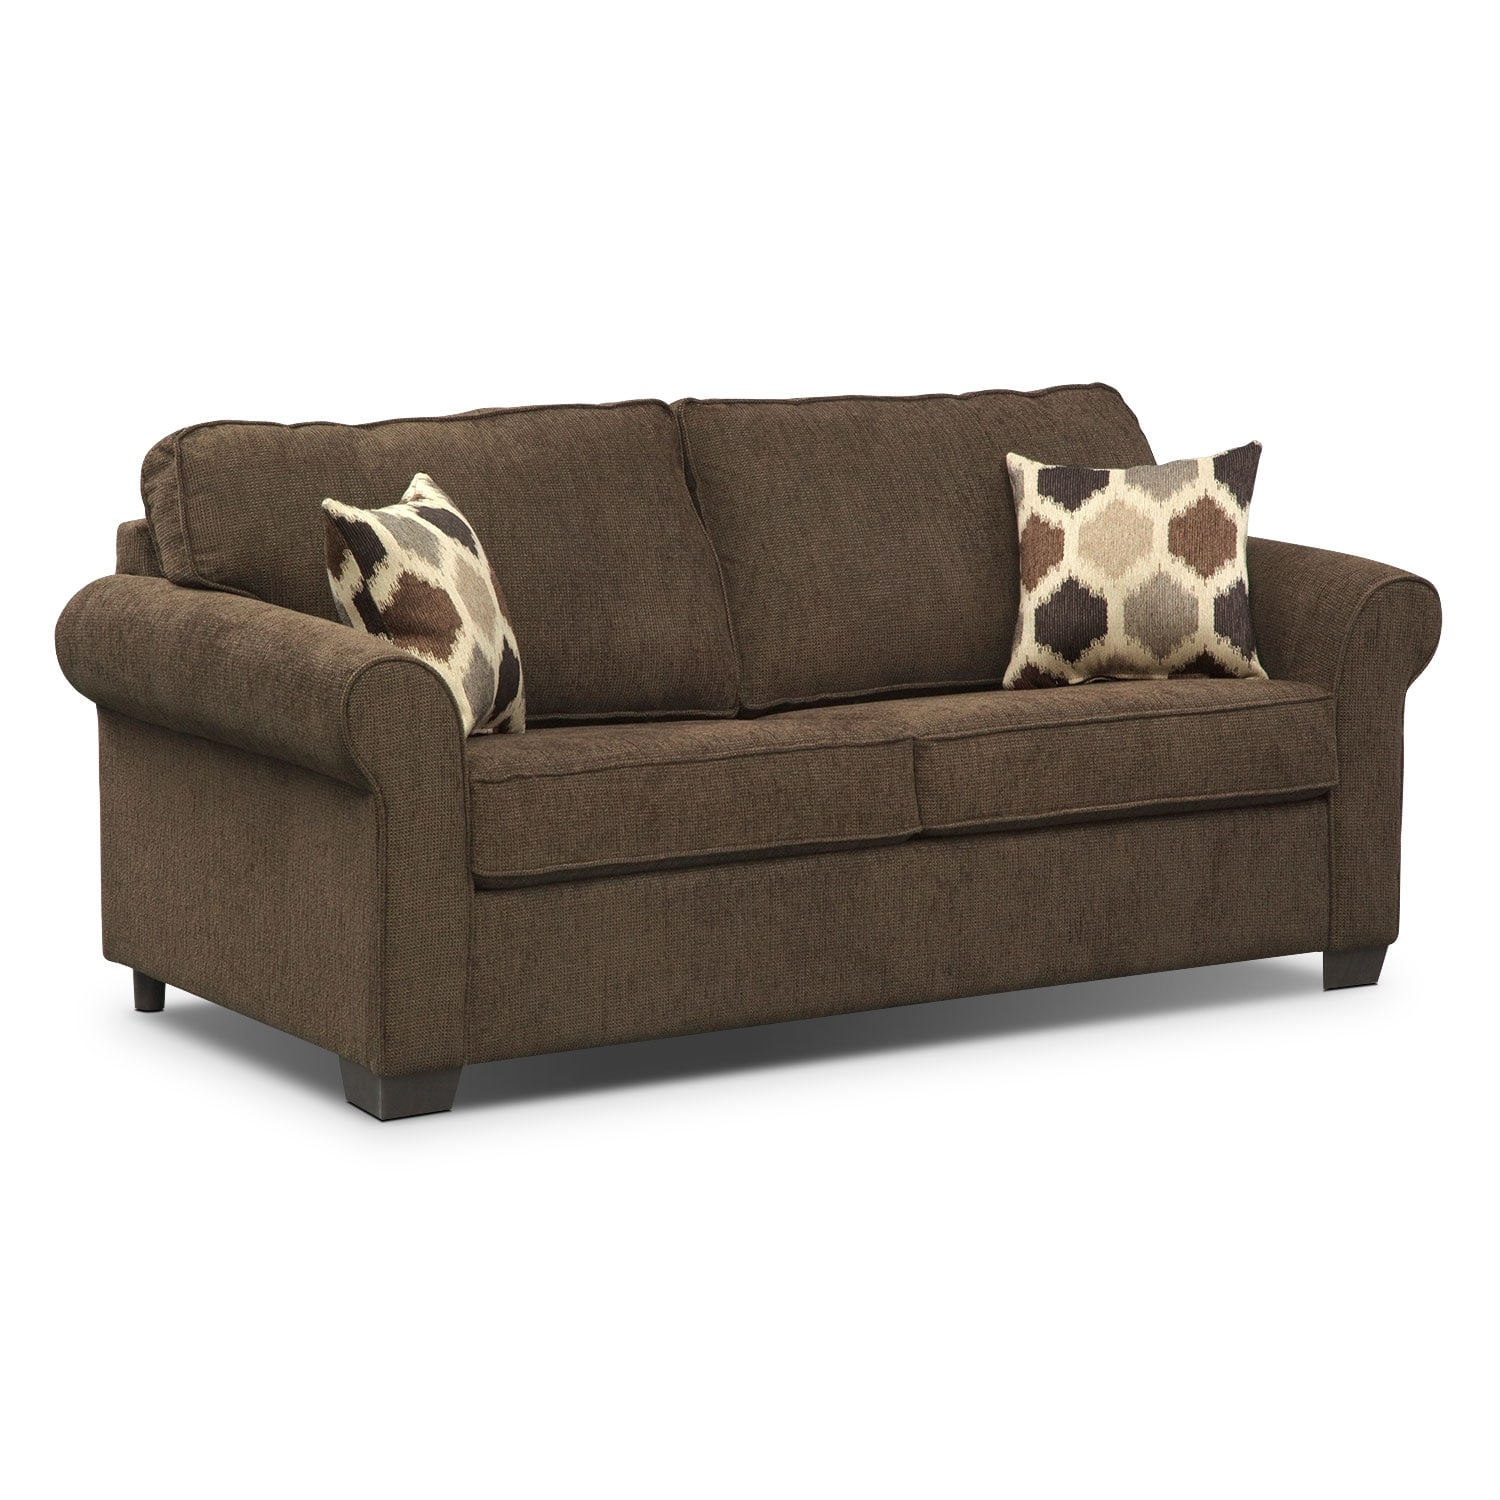 Fletcher Full Memory Foam Sleeper Sofa - Chocolate